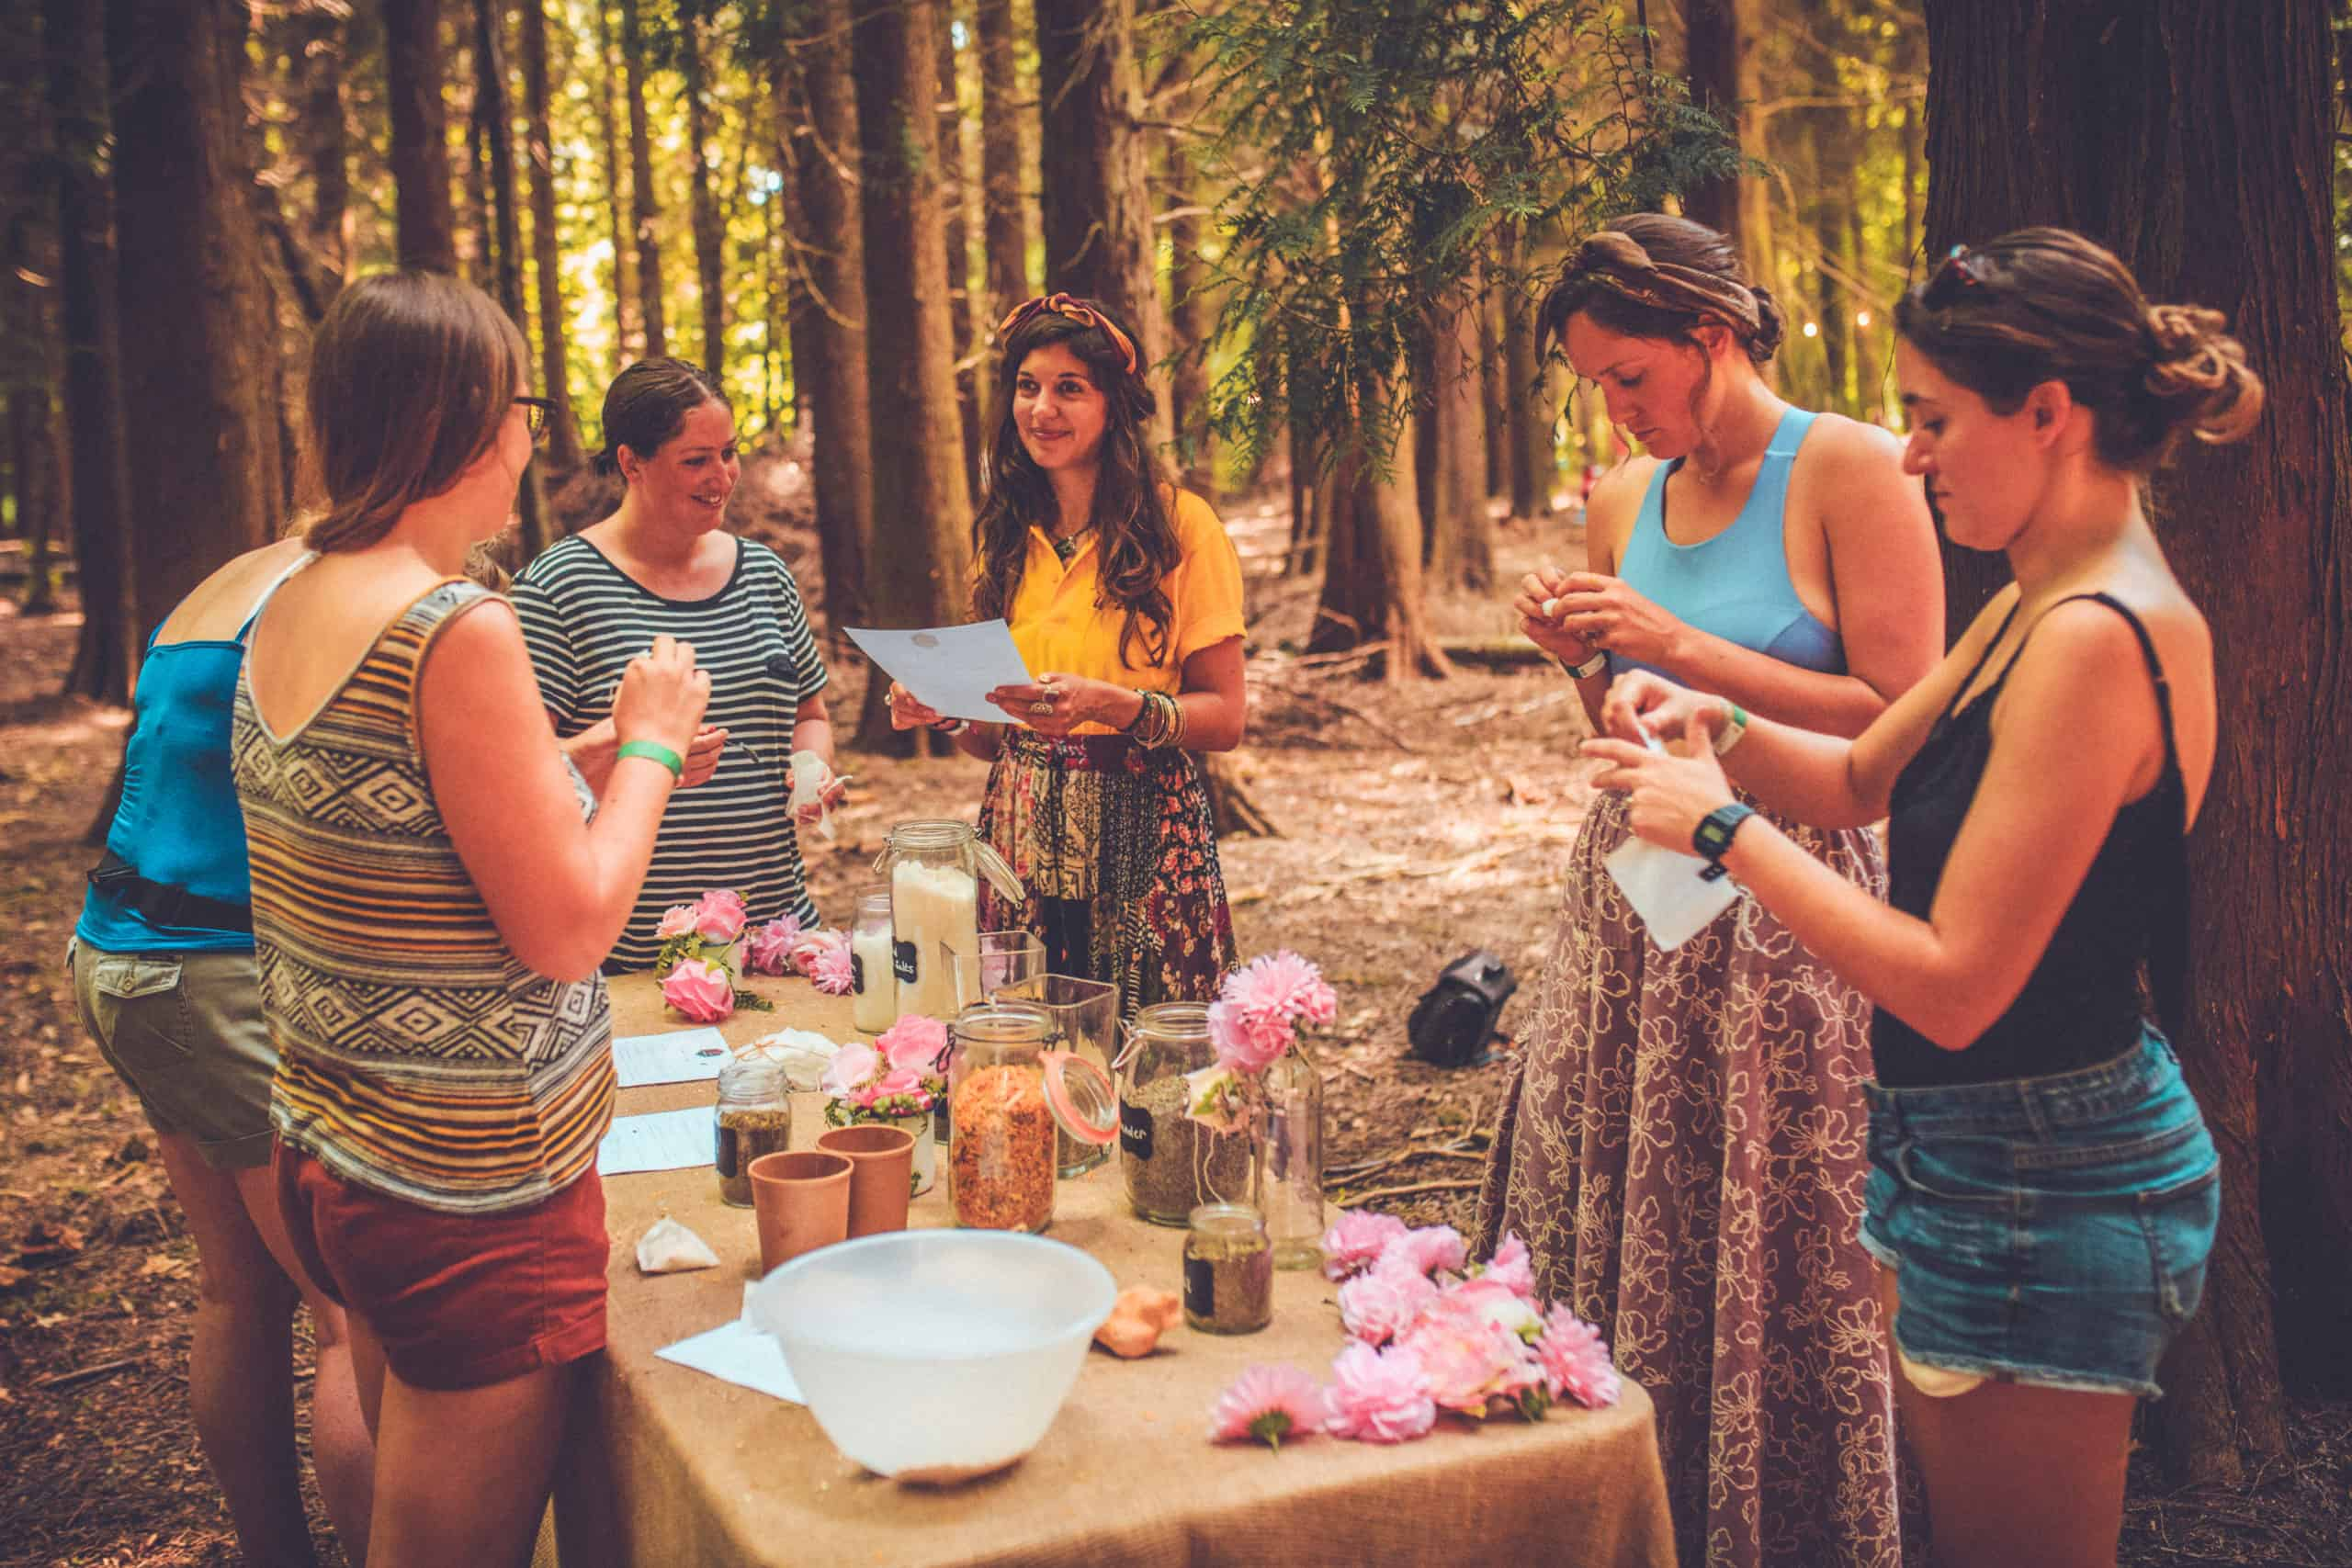 A group mixing ingredients at the Camp Wildfire woodland Apothecary. A summer weekend break in a forest near London and Kent. An outdoor woodland retreat featuring adventure activities, live music, DJs, parties and camping. Half summer adventure activity camp, half music festival, for adults only.